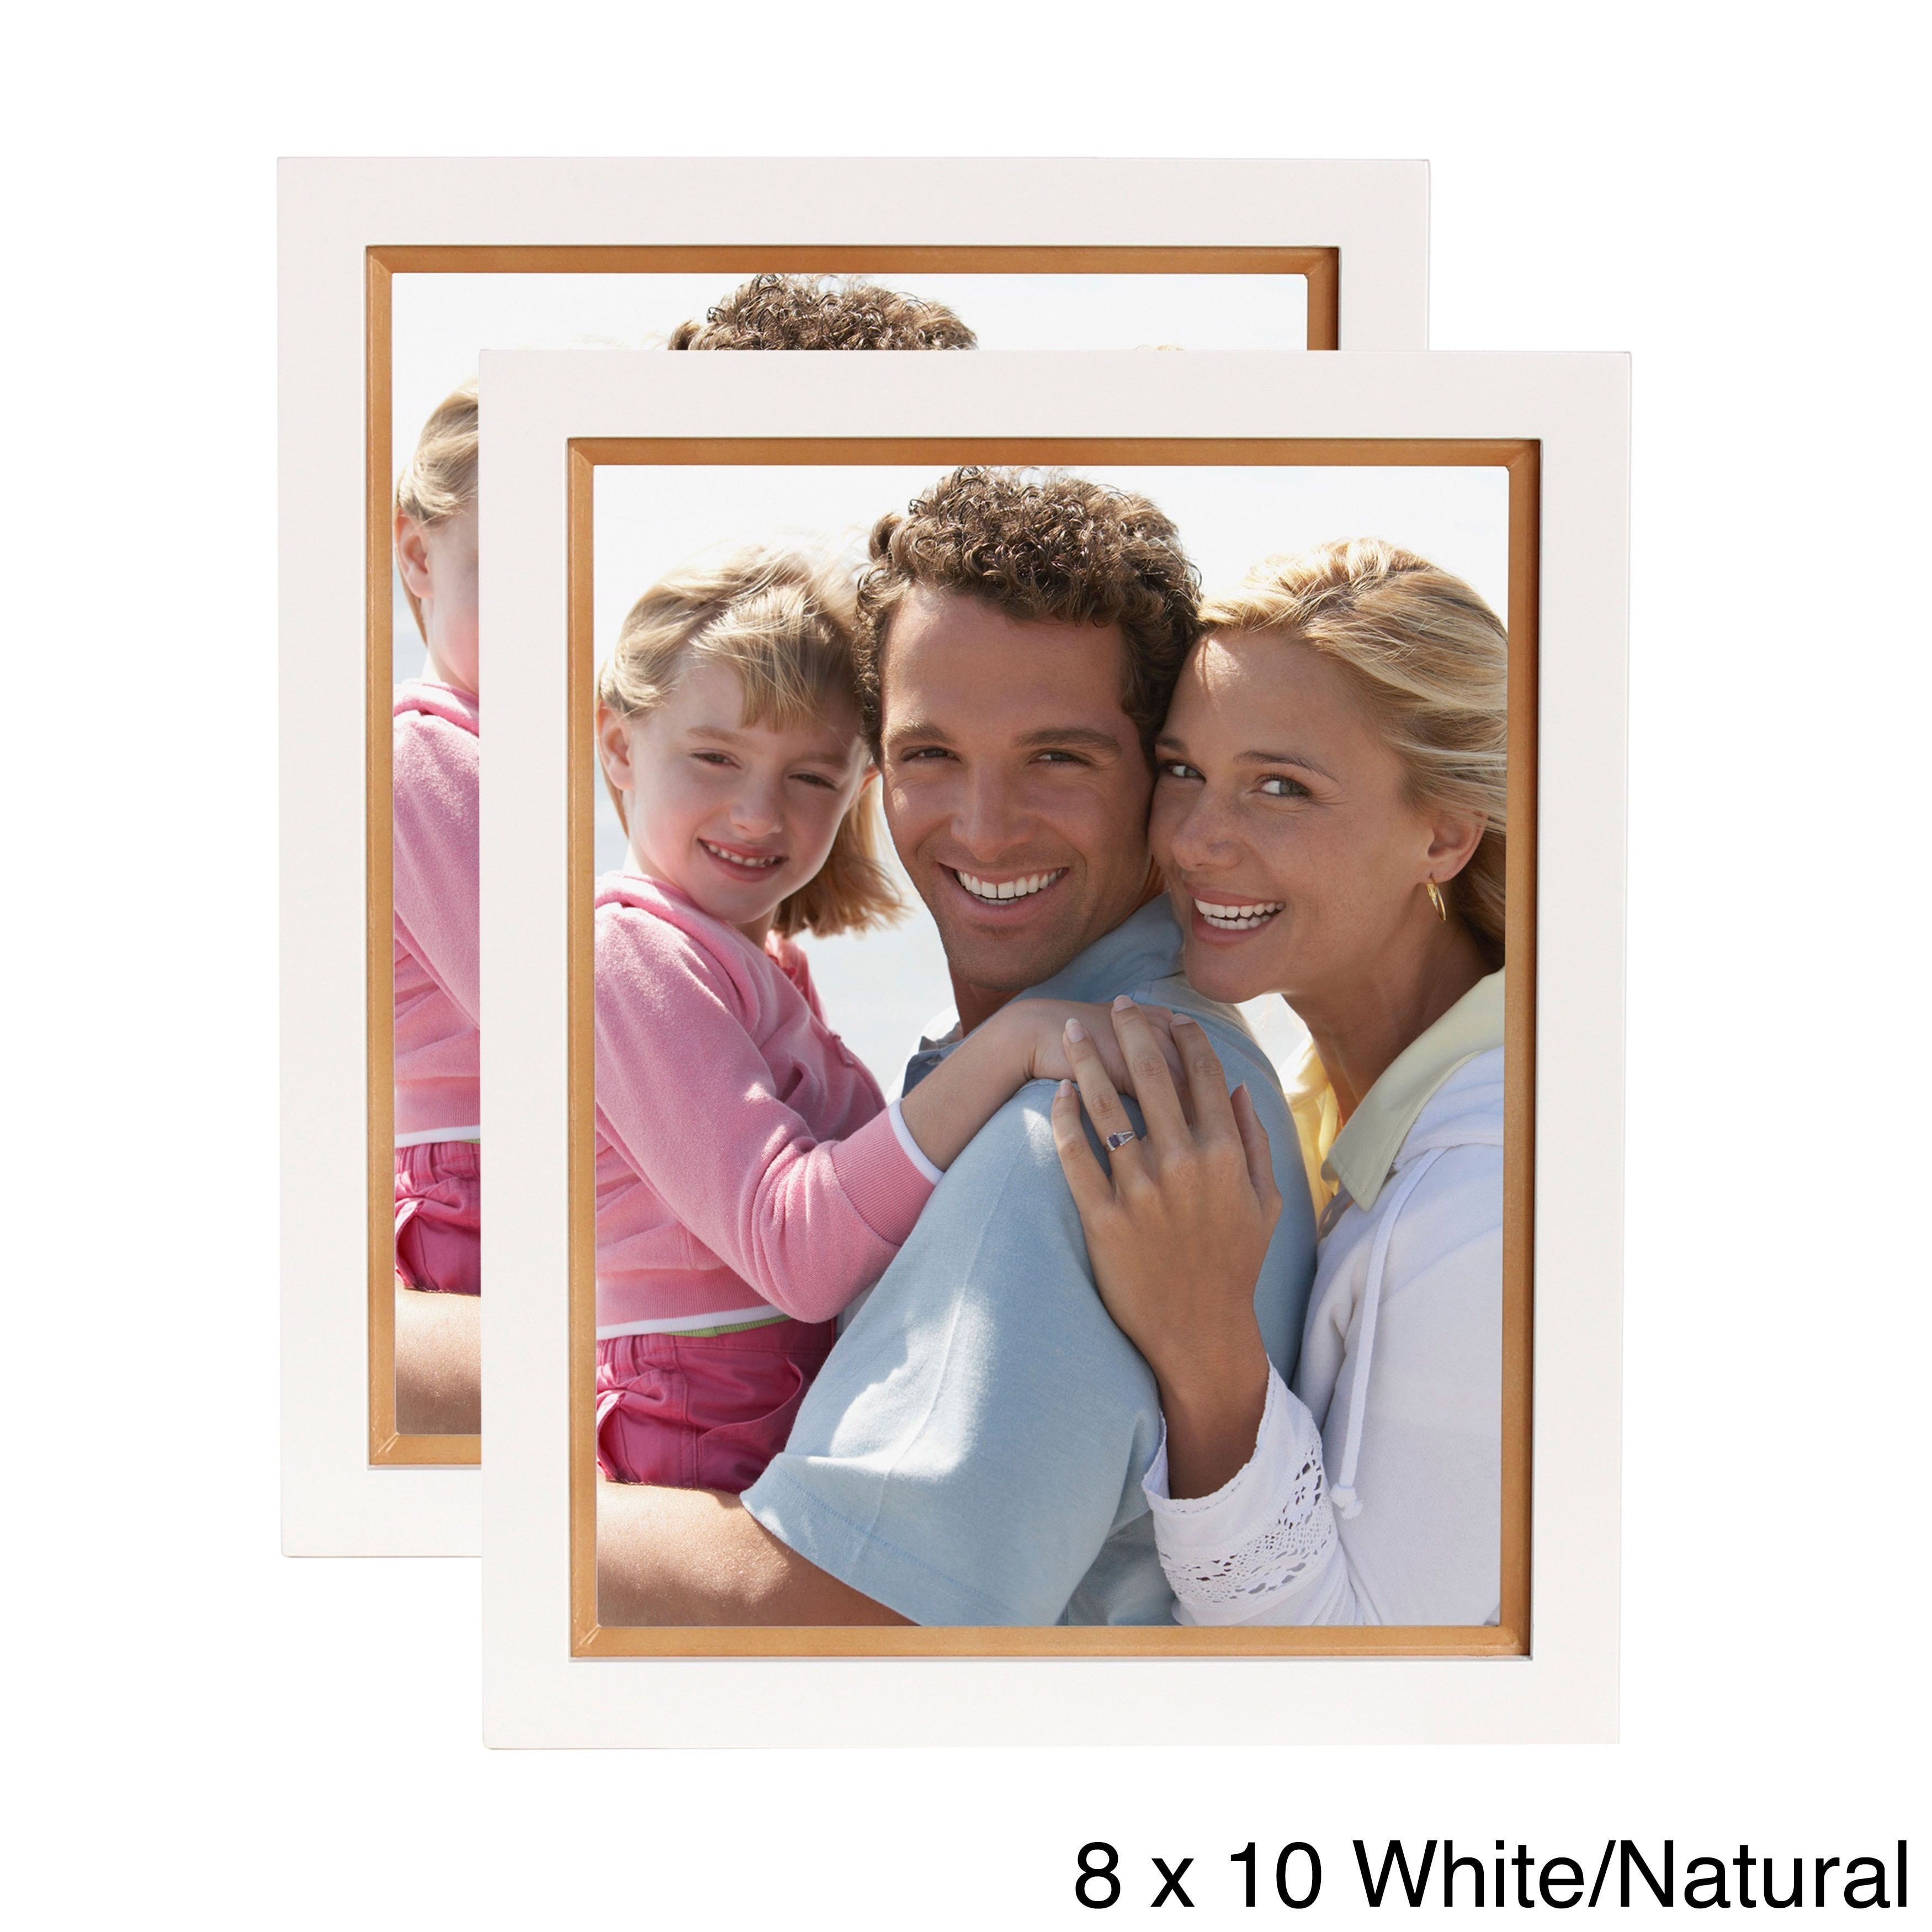 Designovation Muse Wood Picture Frame (Walnut - 8x10), Brown | Wood ...